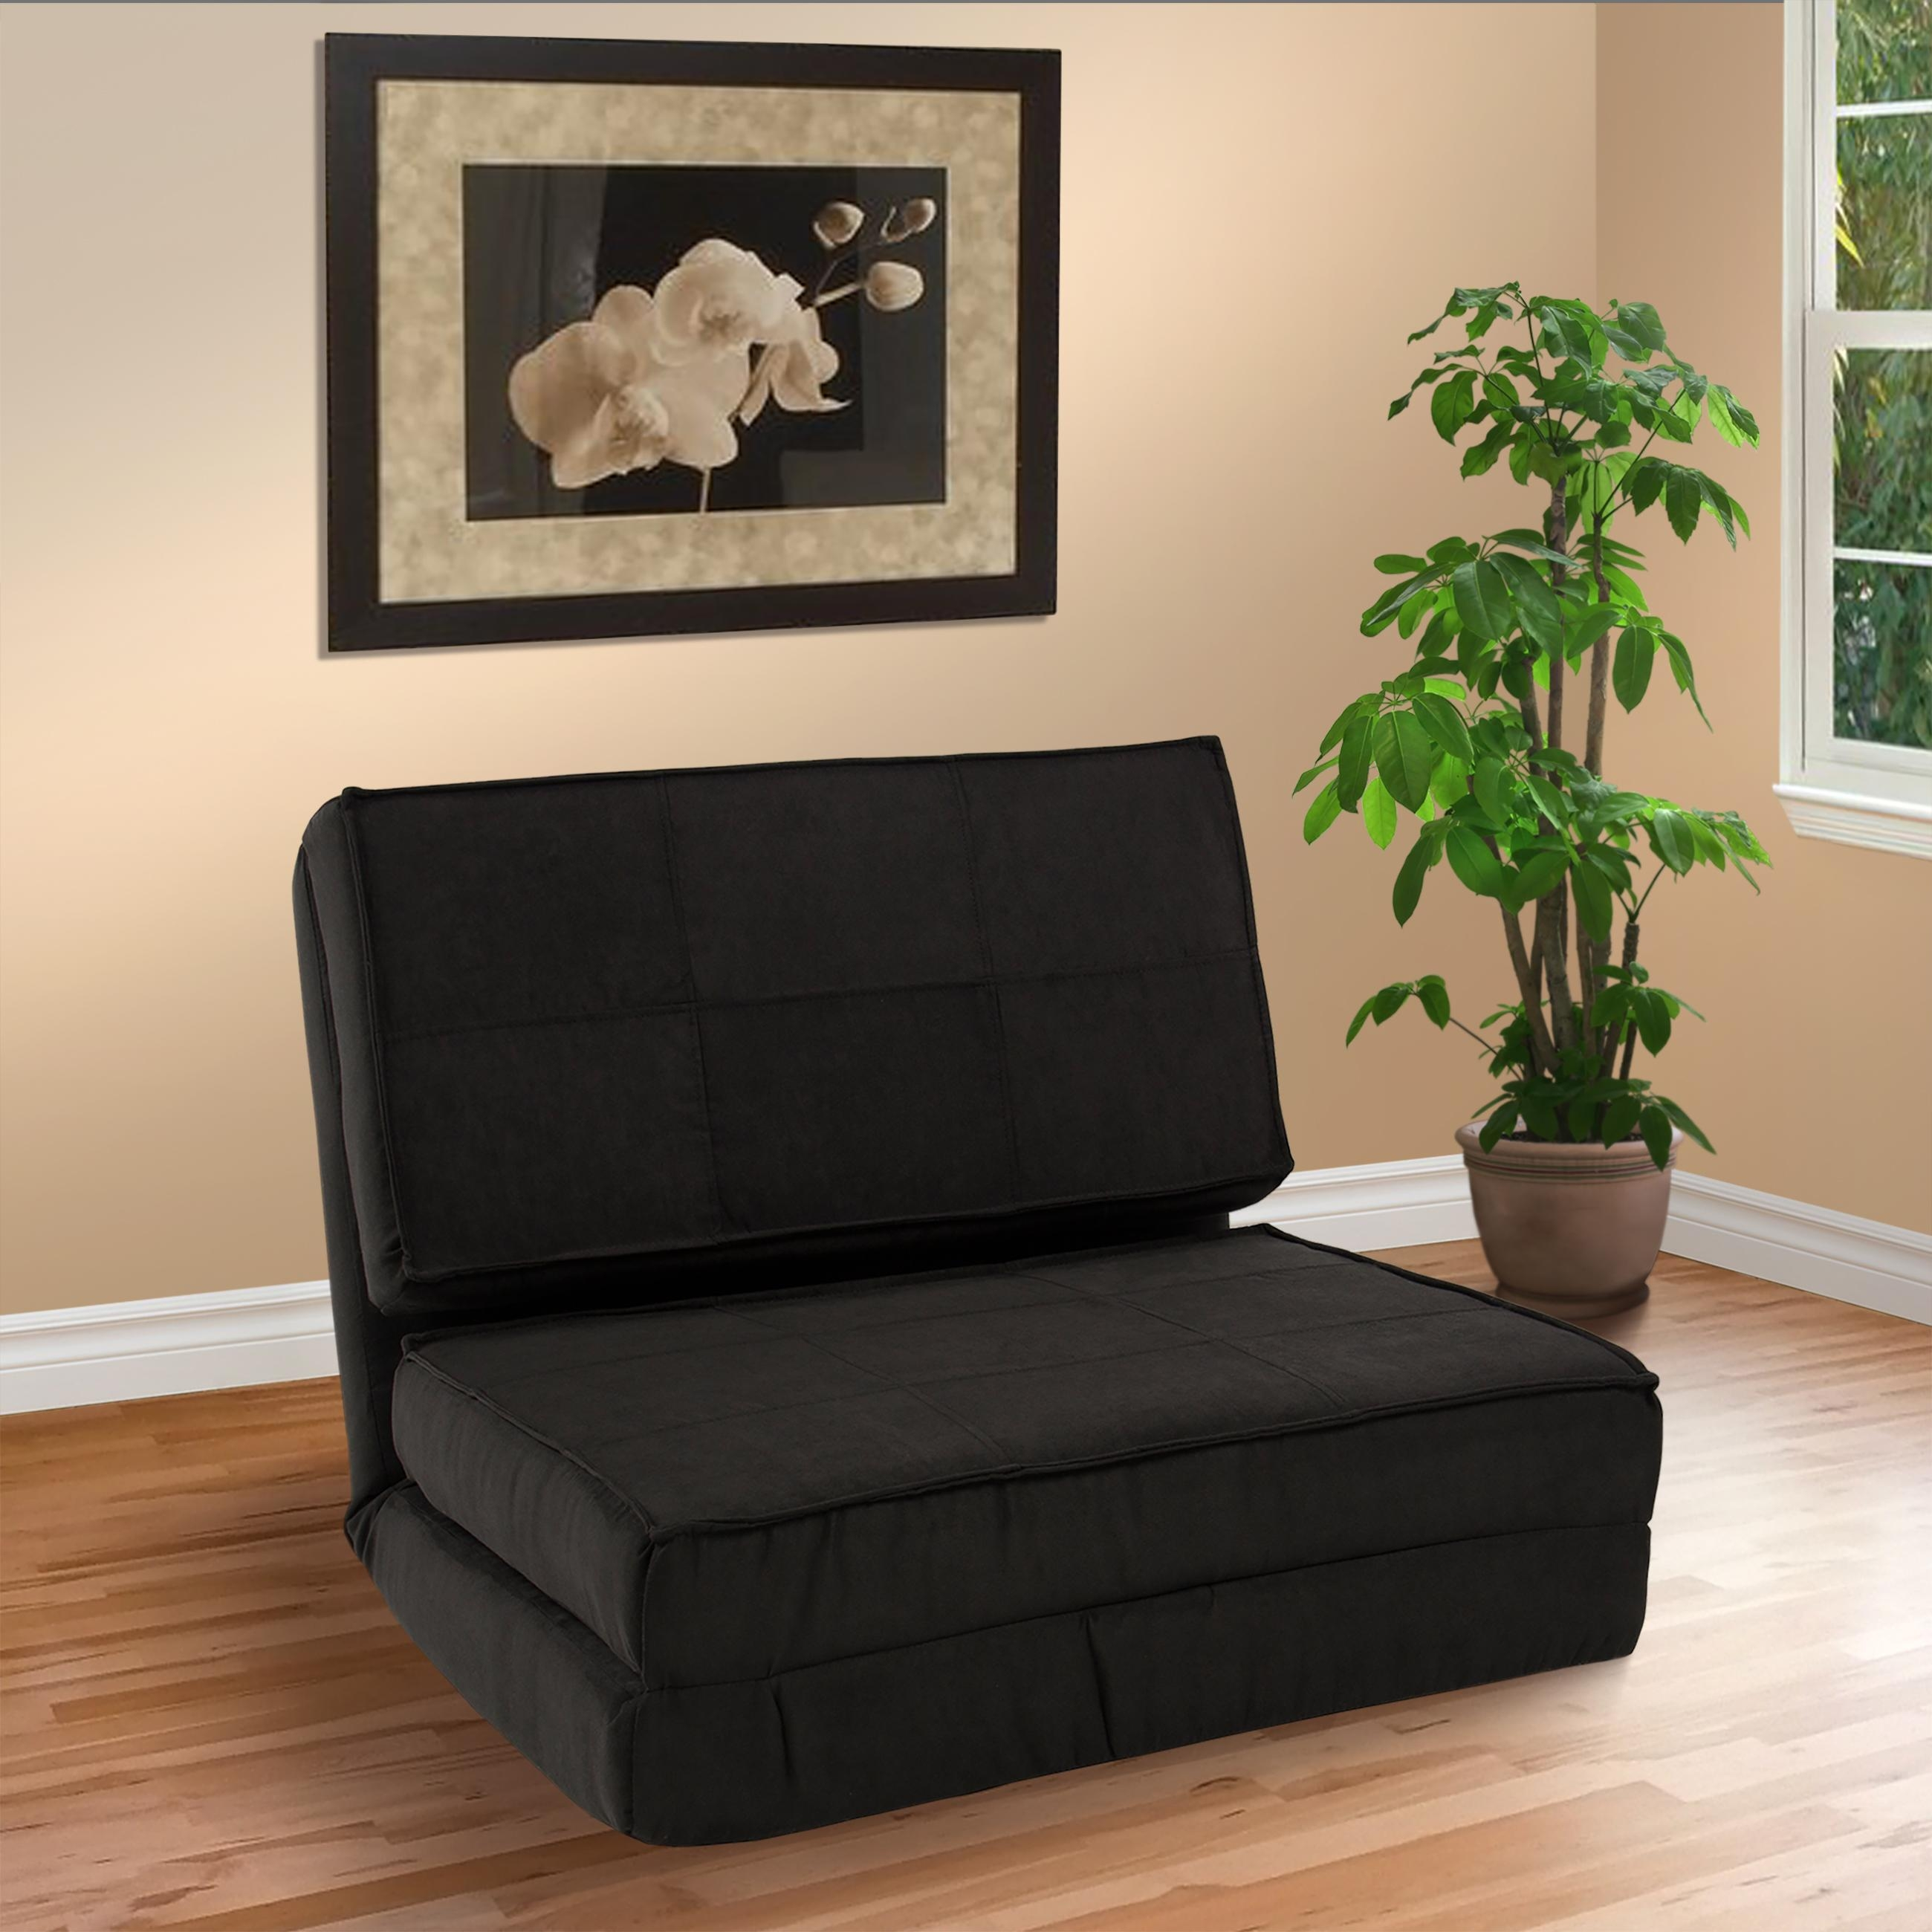 Best Choice Products Convertible Sleeper Chair Bed (Black Throughout Convertible Sofa Chair Bed (View 14 of 20)